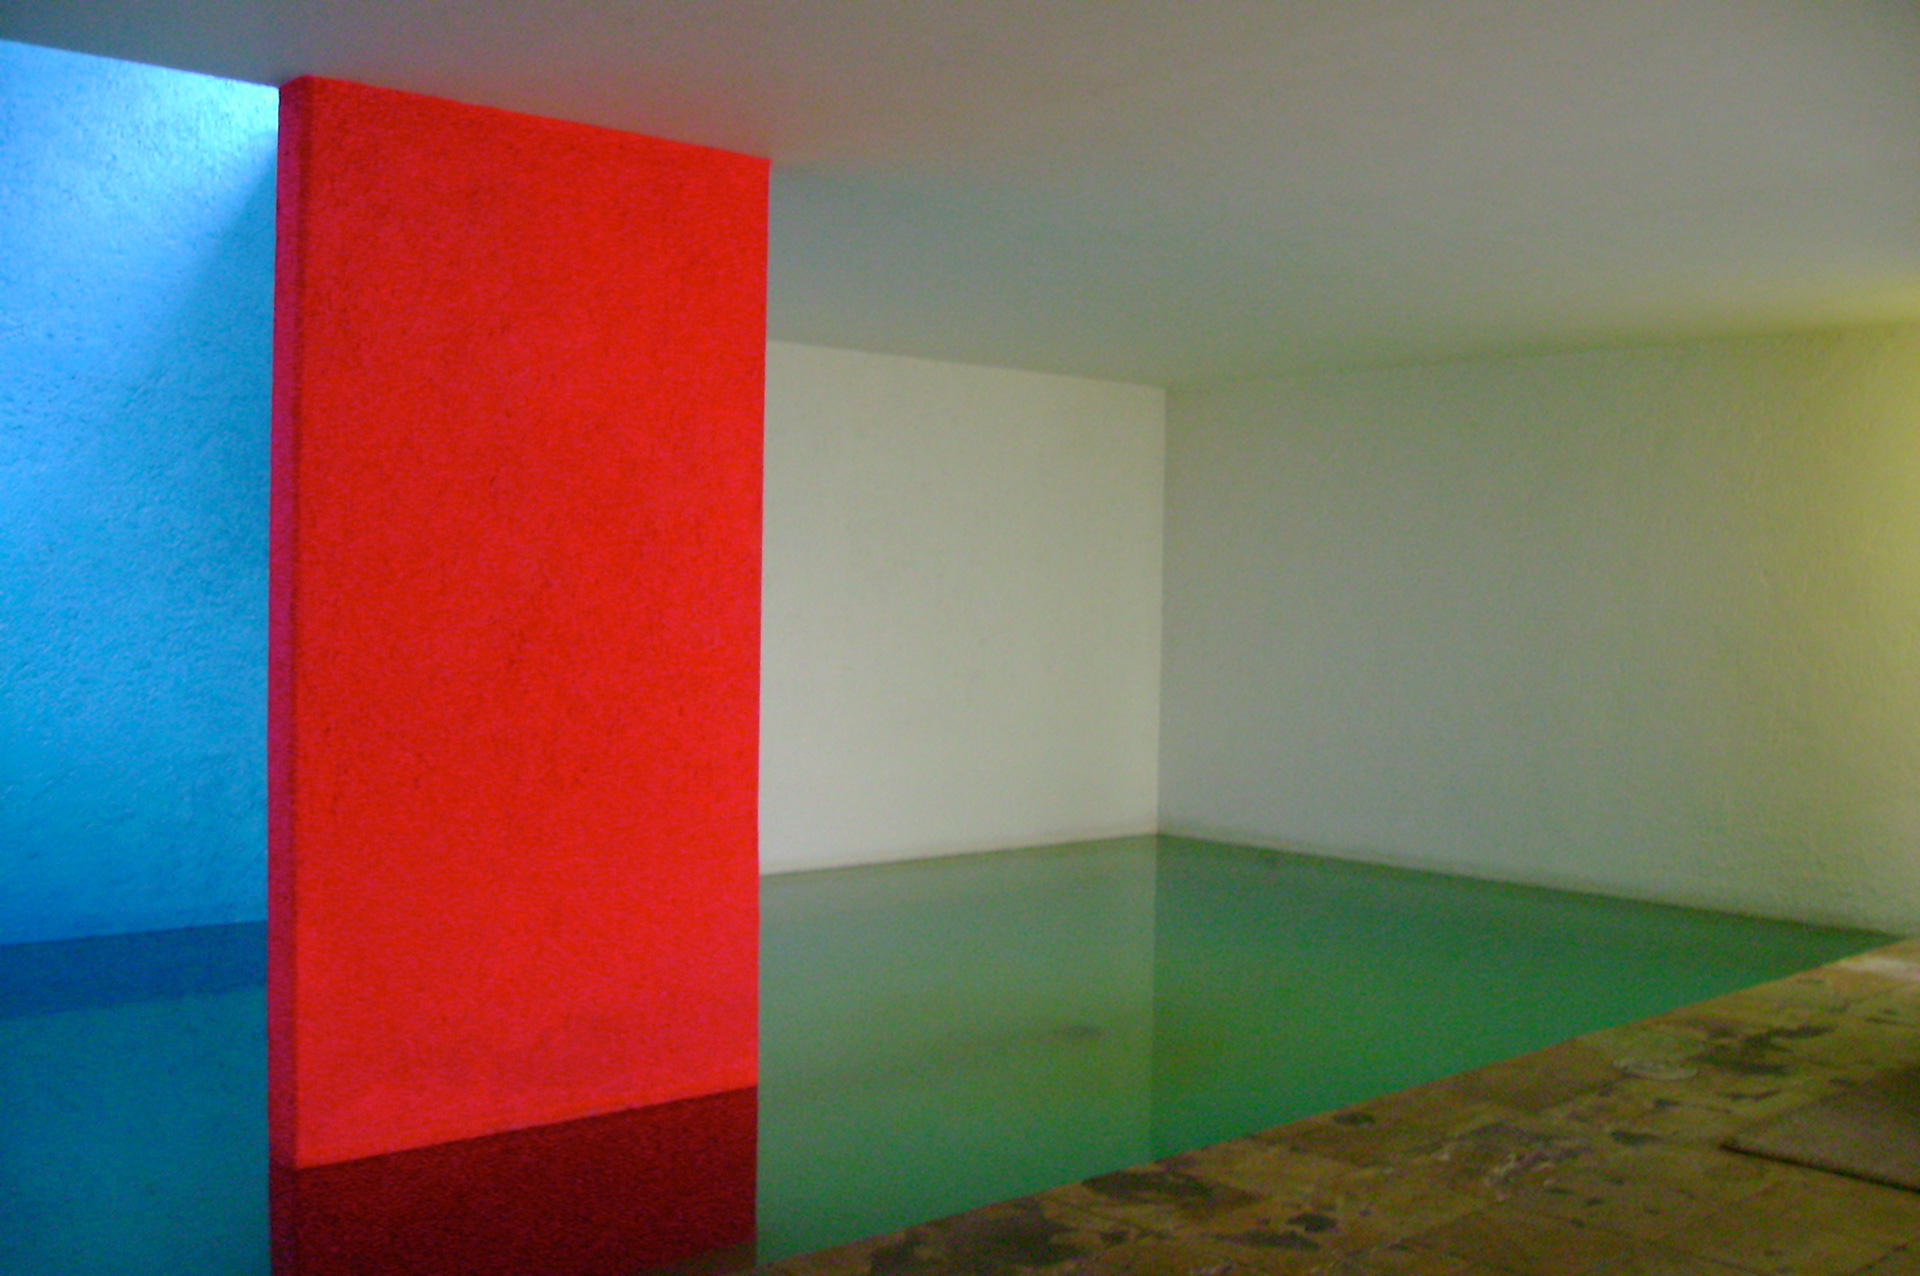 Fountain of Casa Gilardi by Luis Barragán | Luis Barragán | STIRworld